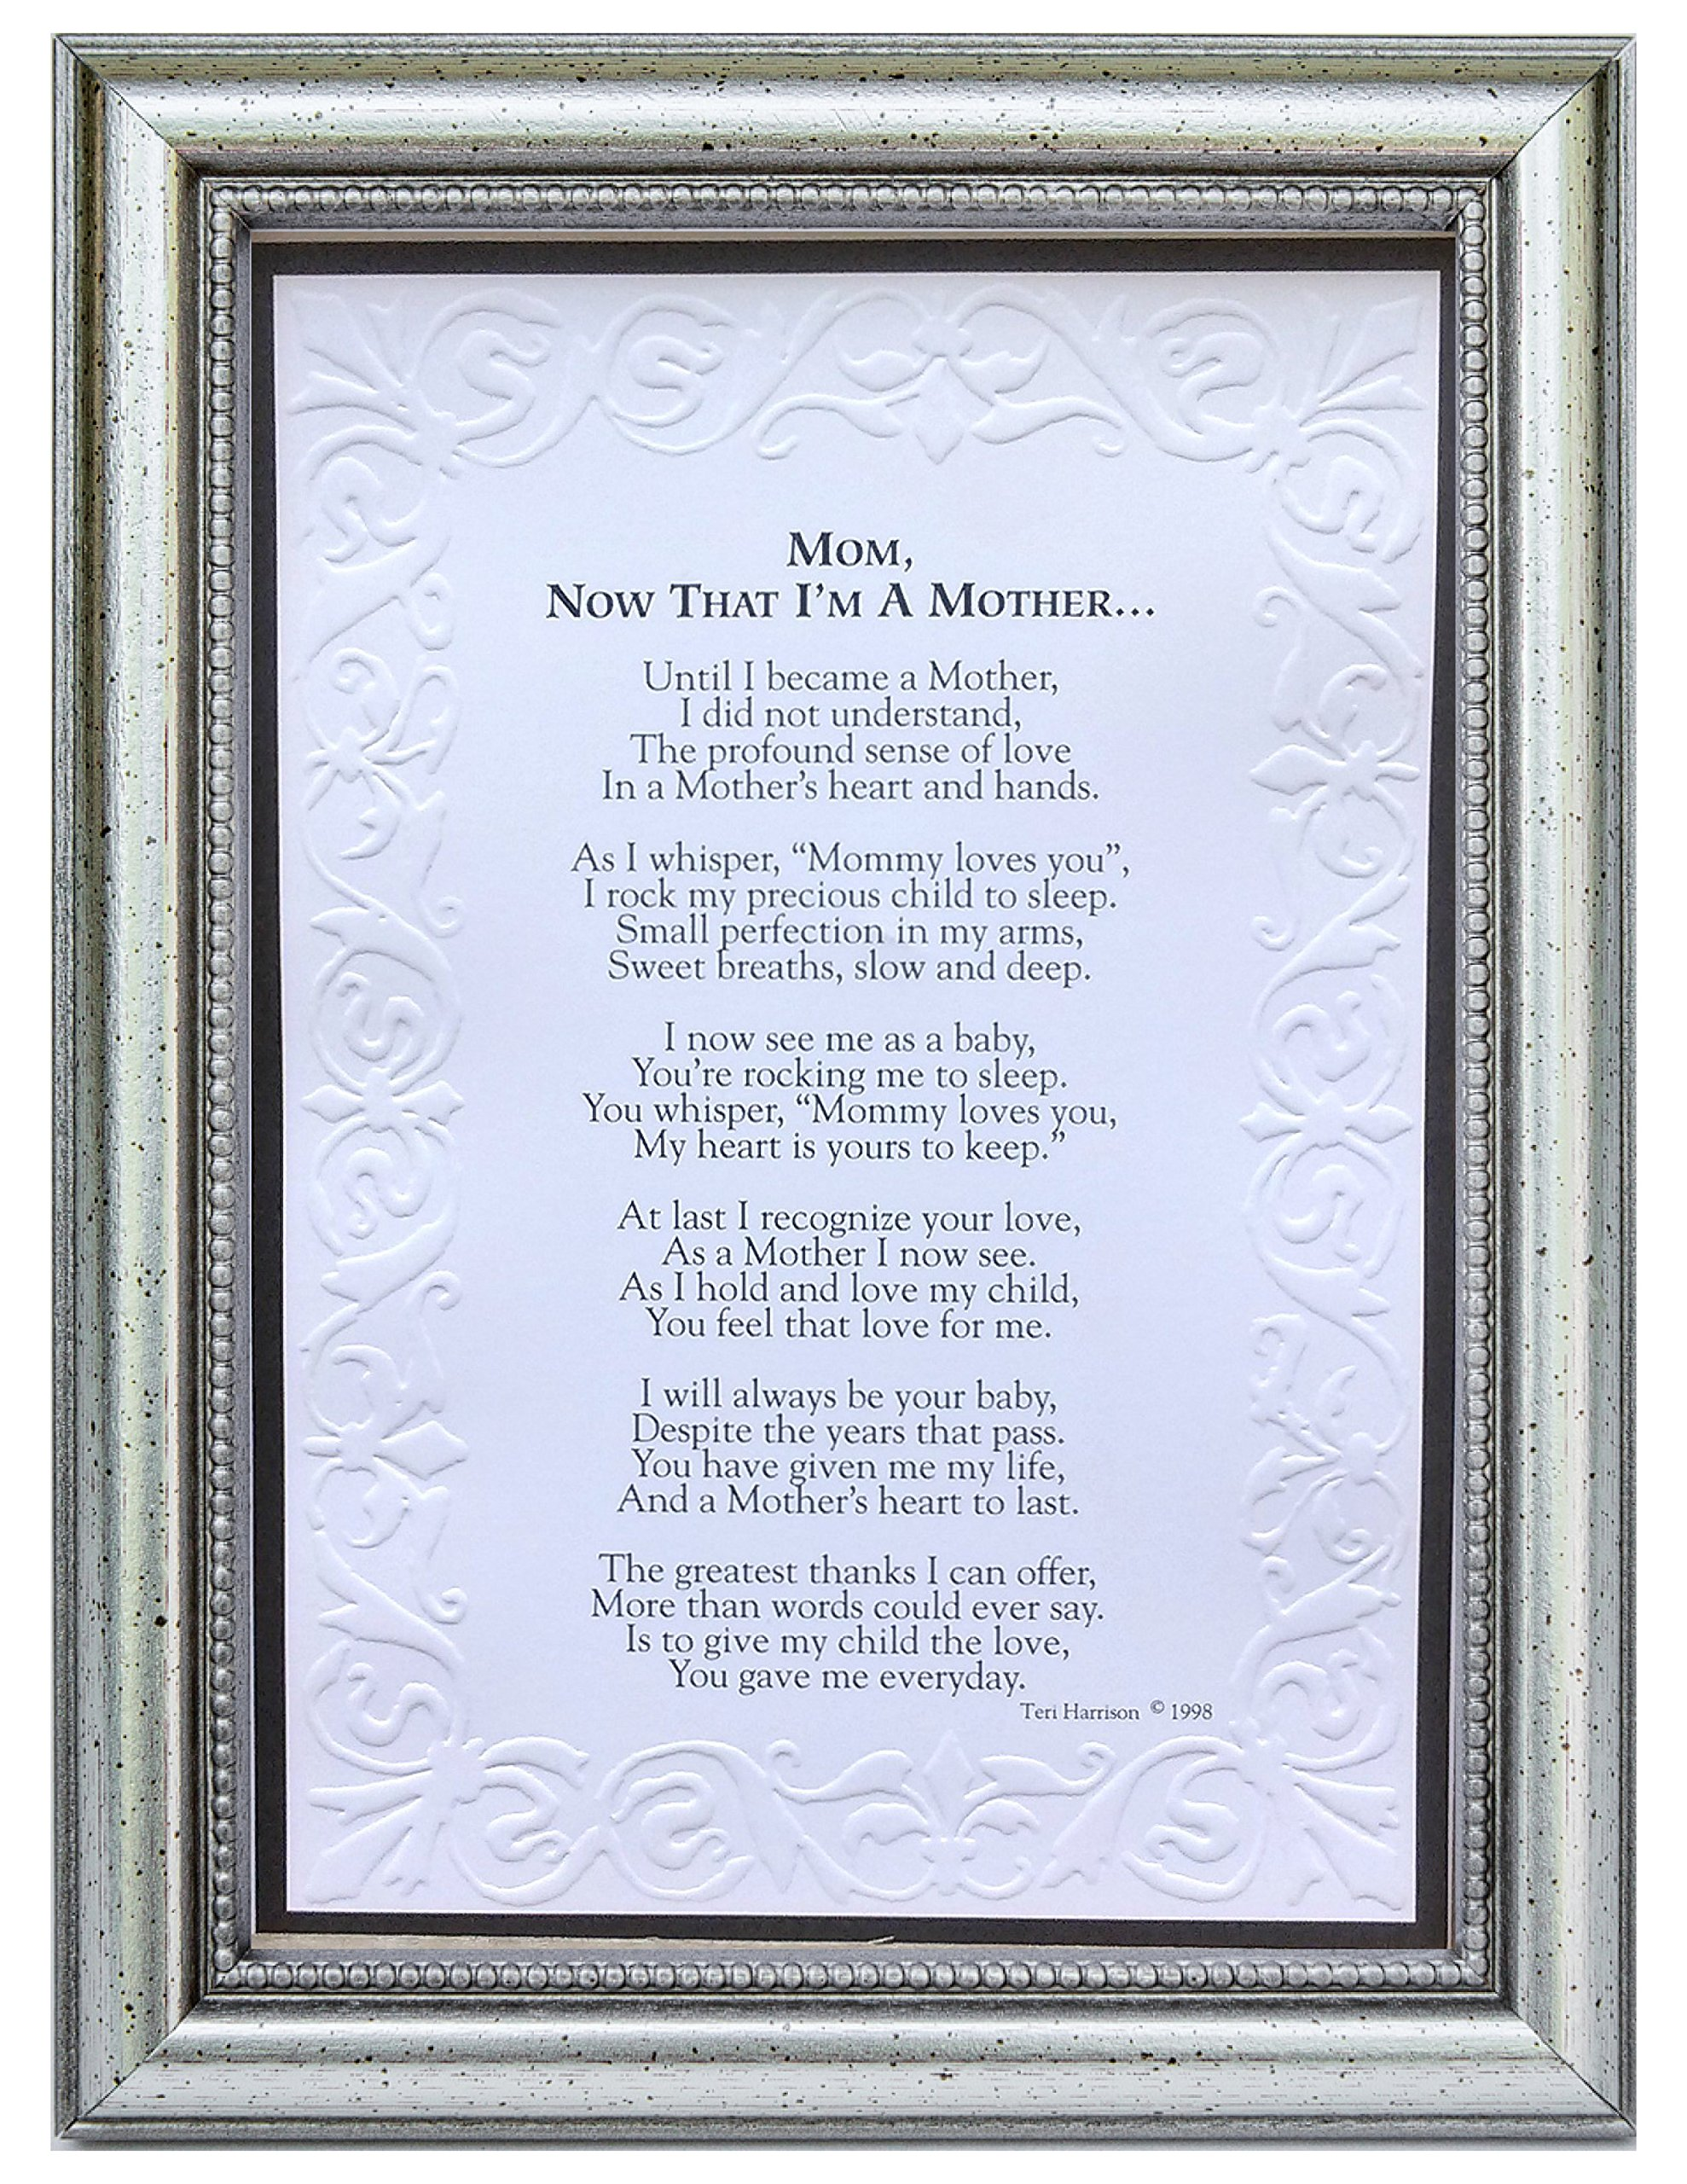 The Grandparent Gift Now That I'm a Mother Frame Gift for Mom from Daughter